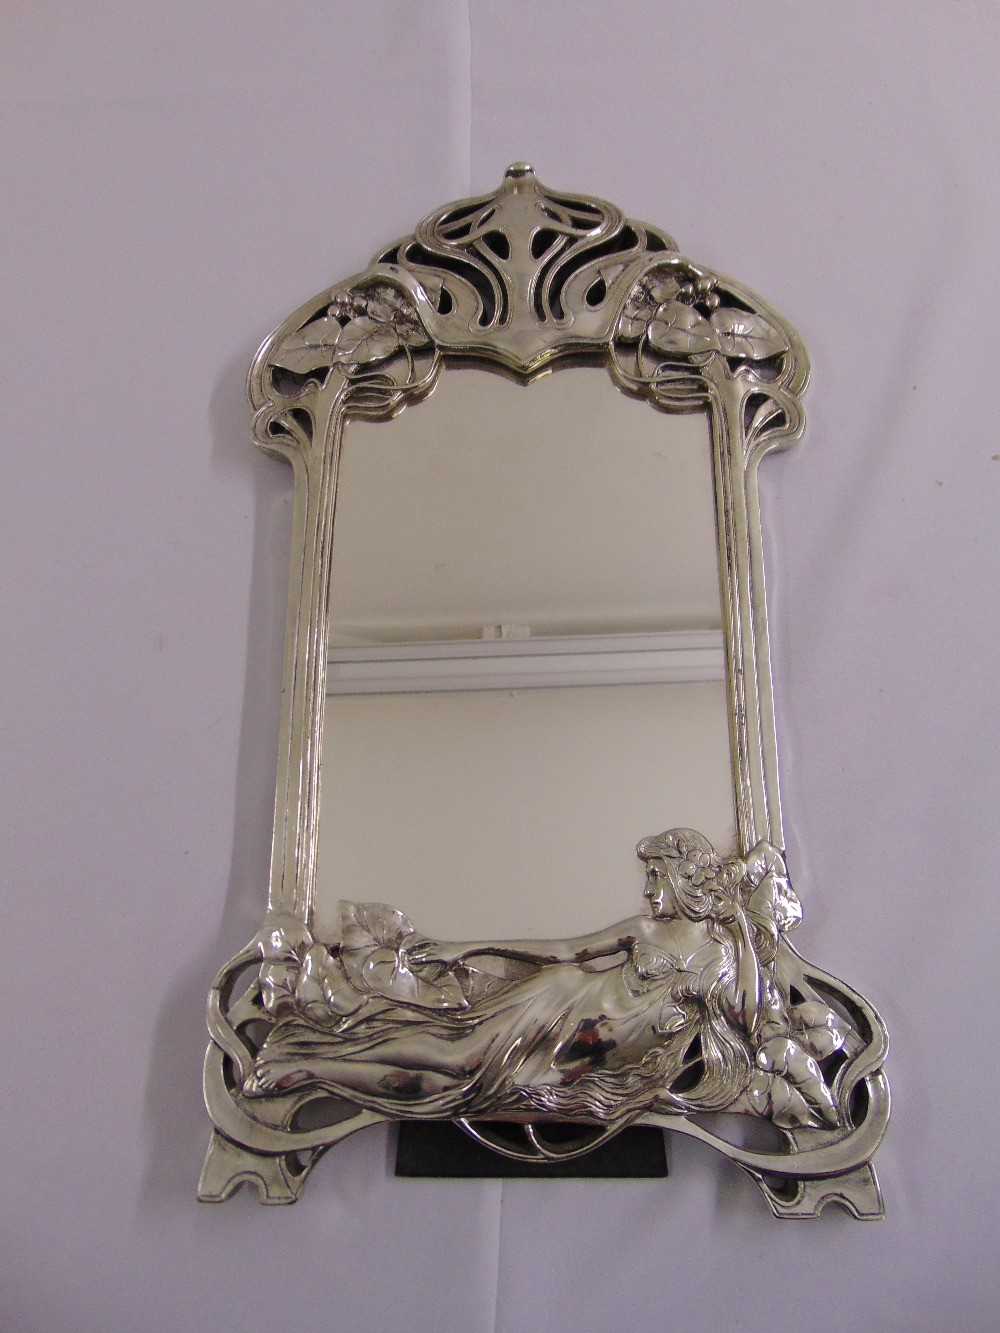 Lot 41 - A silvered Art Nouveau style table mirror shaped rectangular with stylised vegetation and a